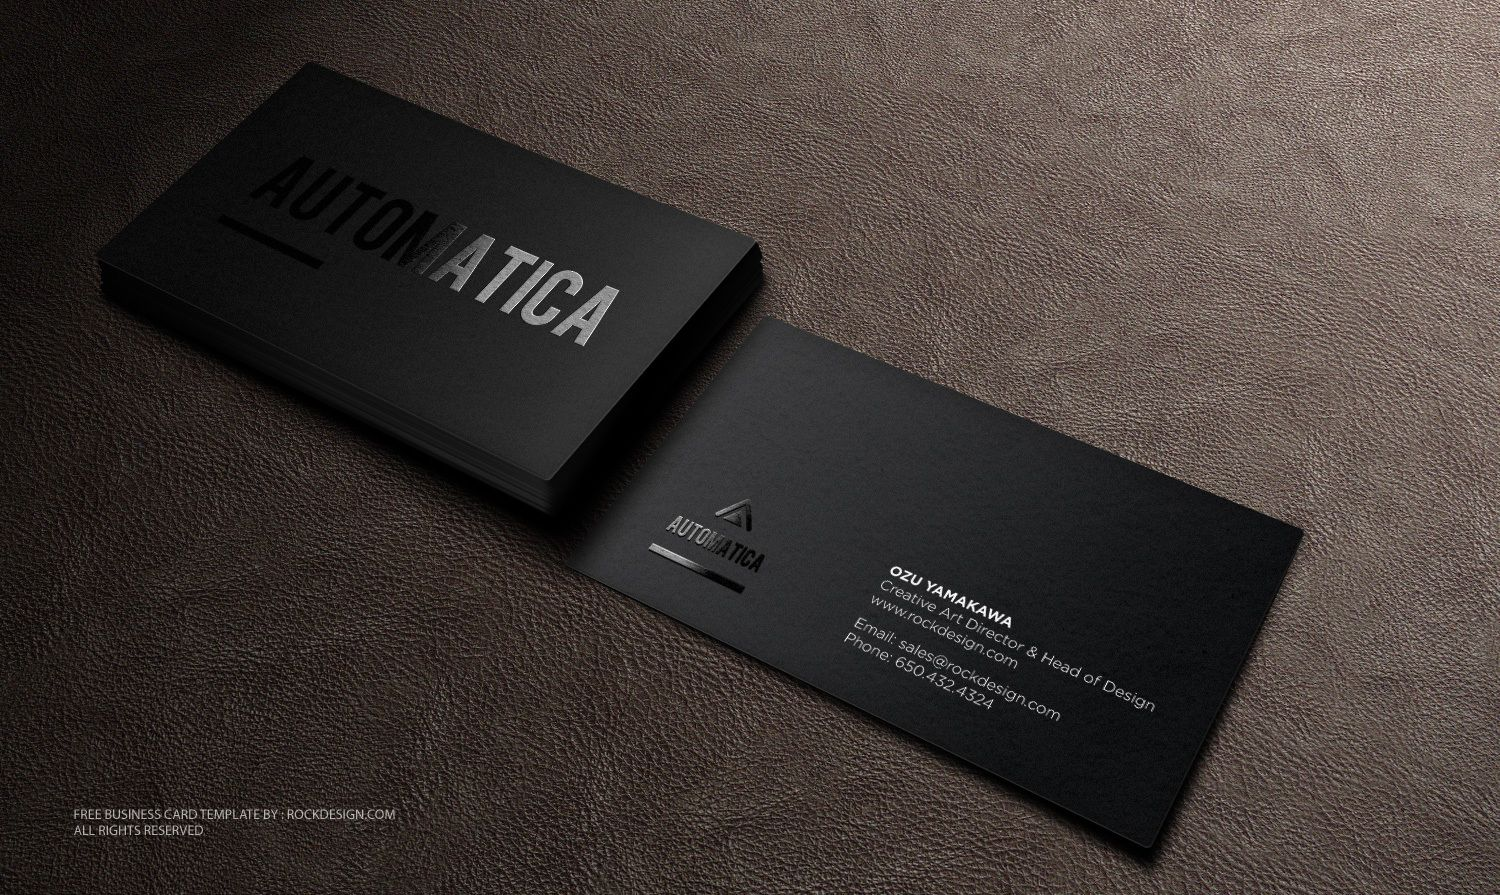 Black Business Card Template Download Free Design Templates - Business card design template free